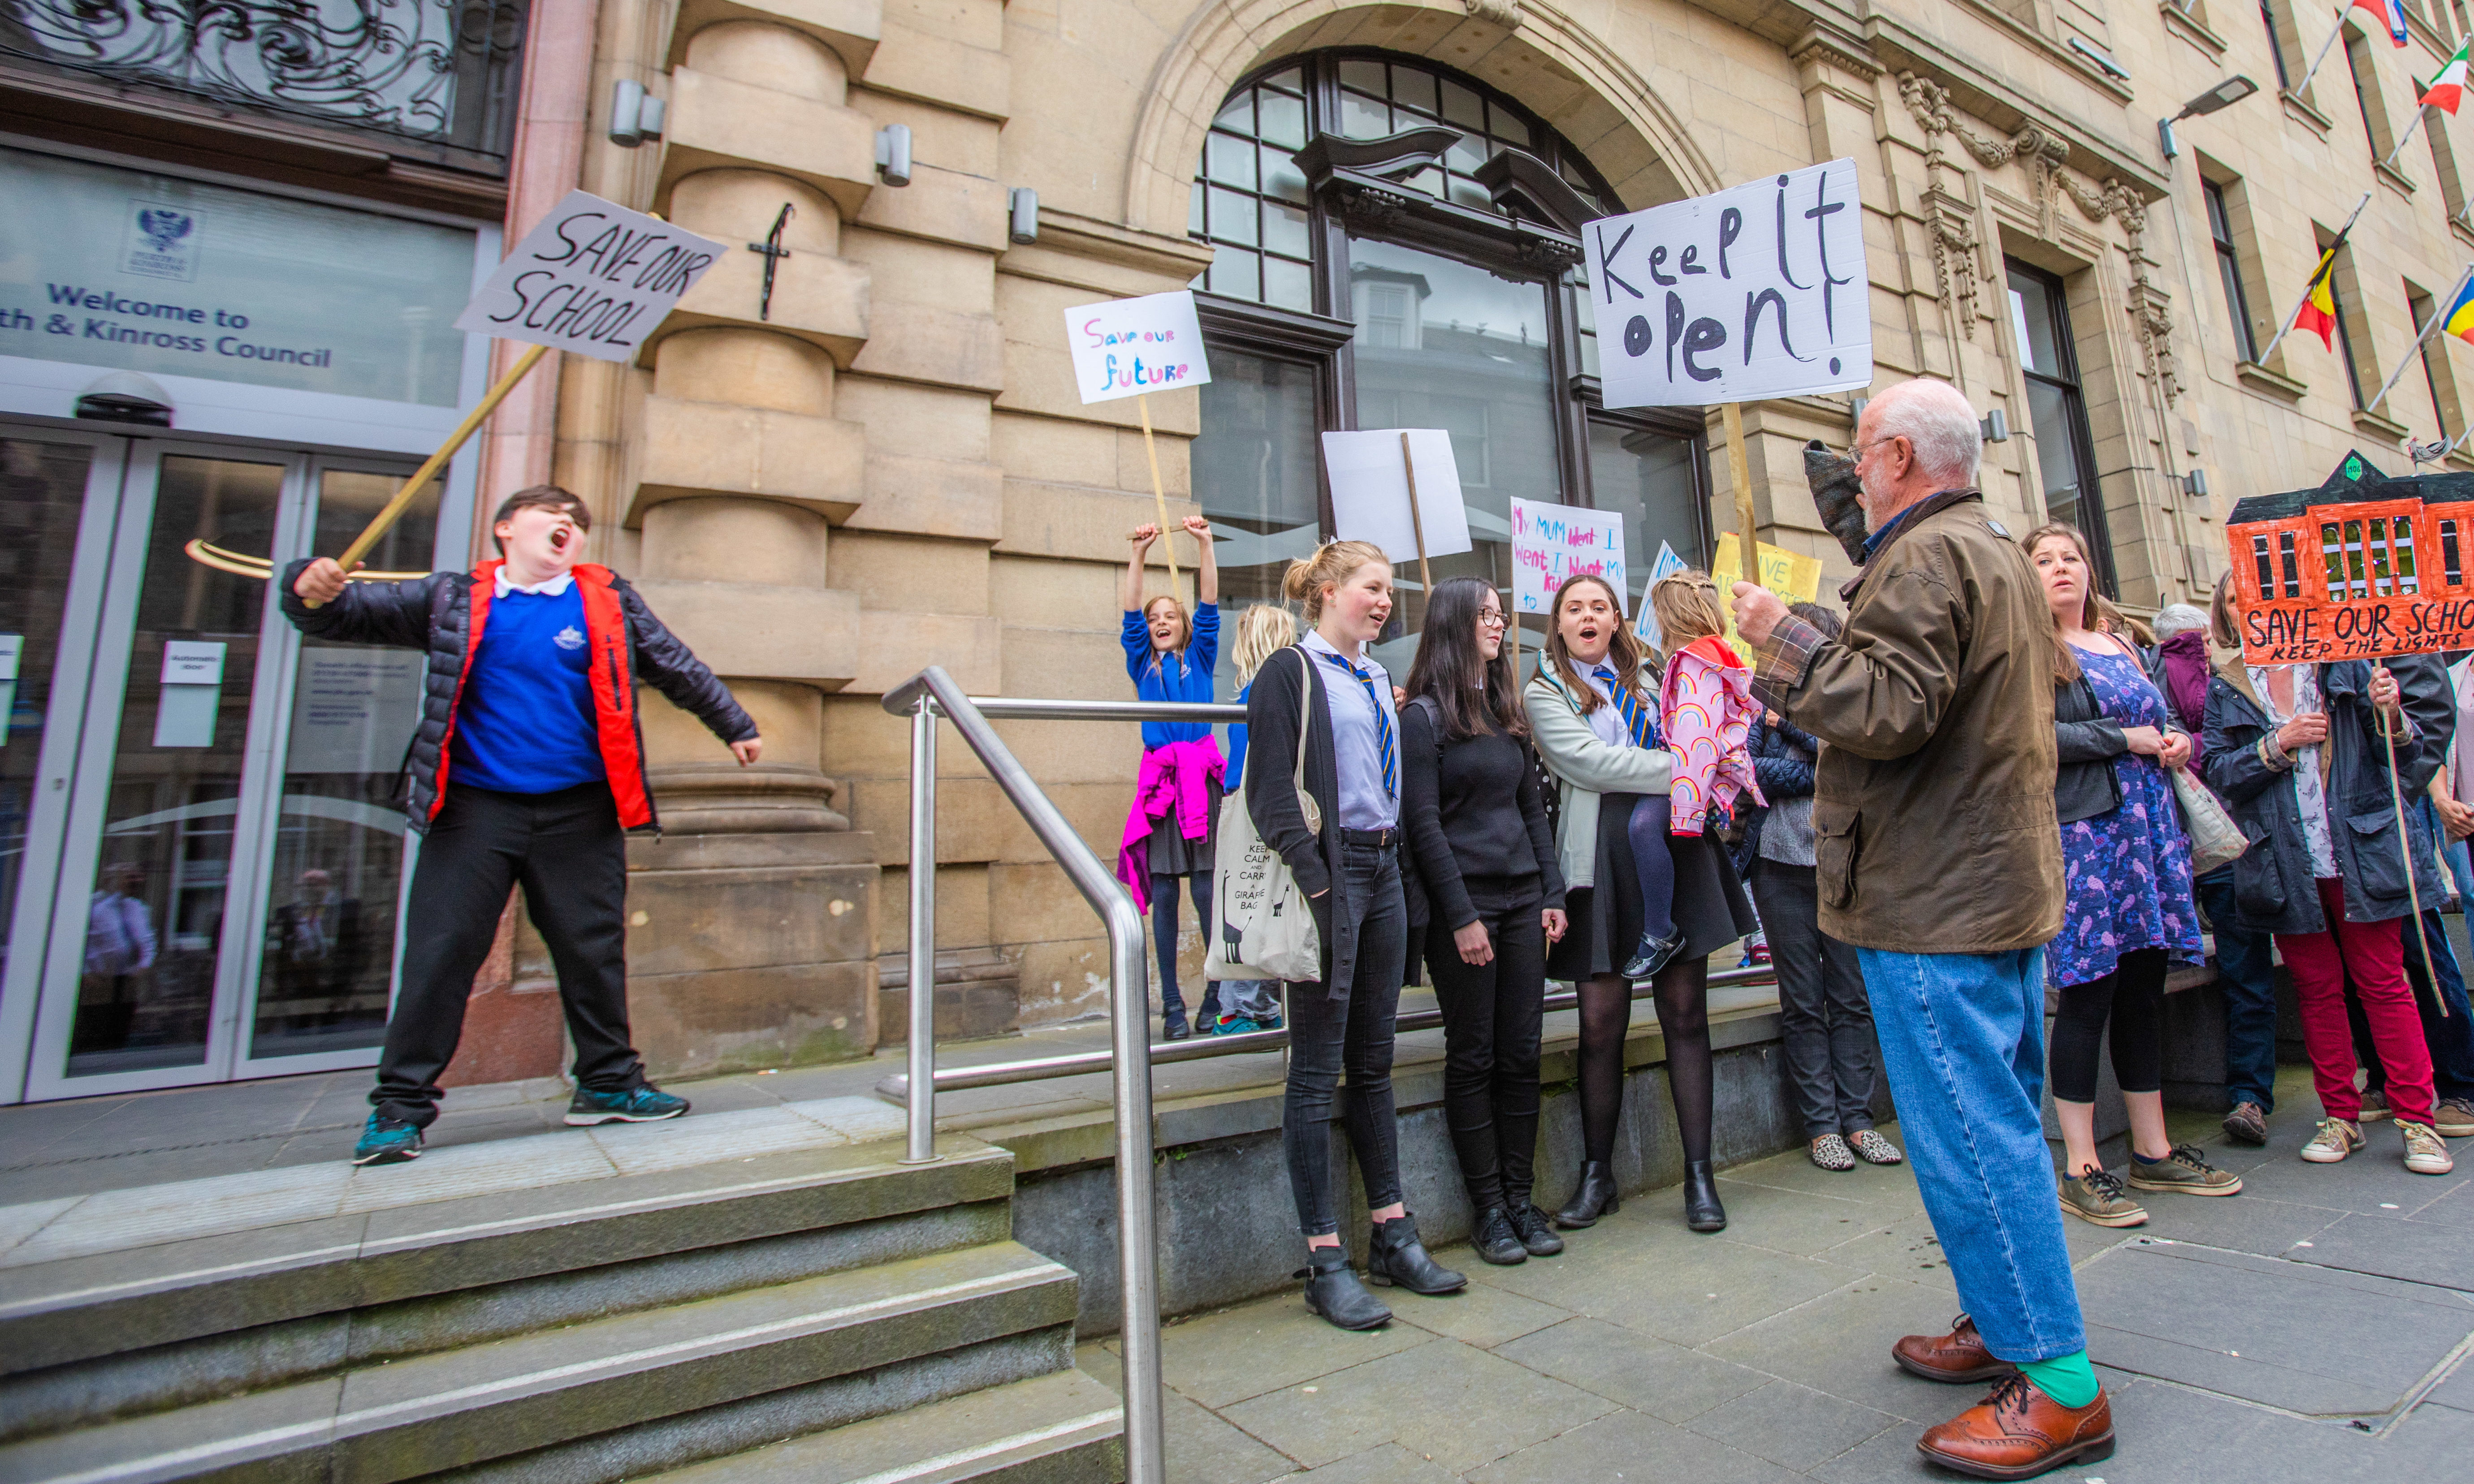 Having protested against closure, Abernyte Parent Council have now asked Scottish Ministers to review Perth and Kinross Councils decision to close the school.